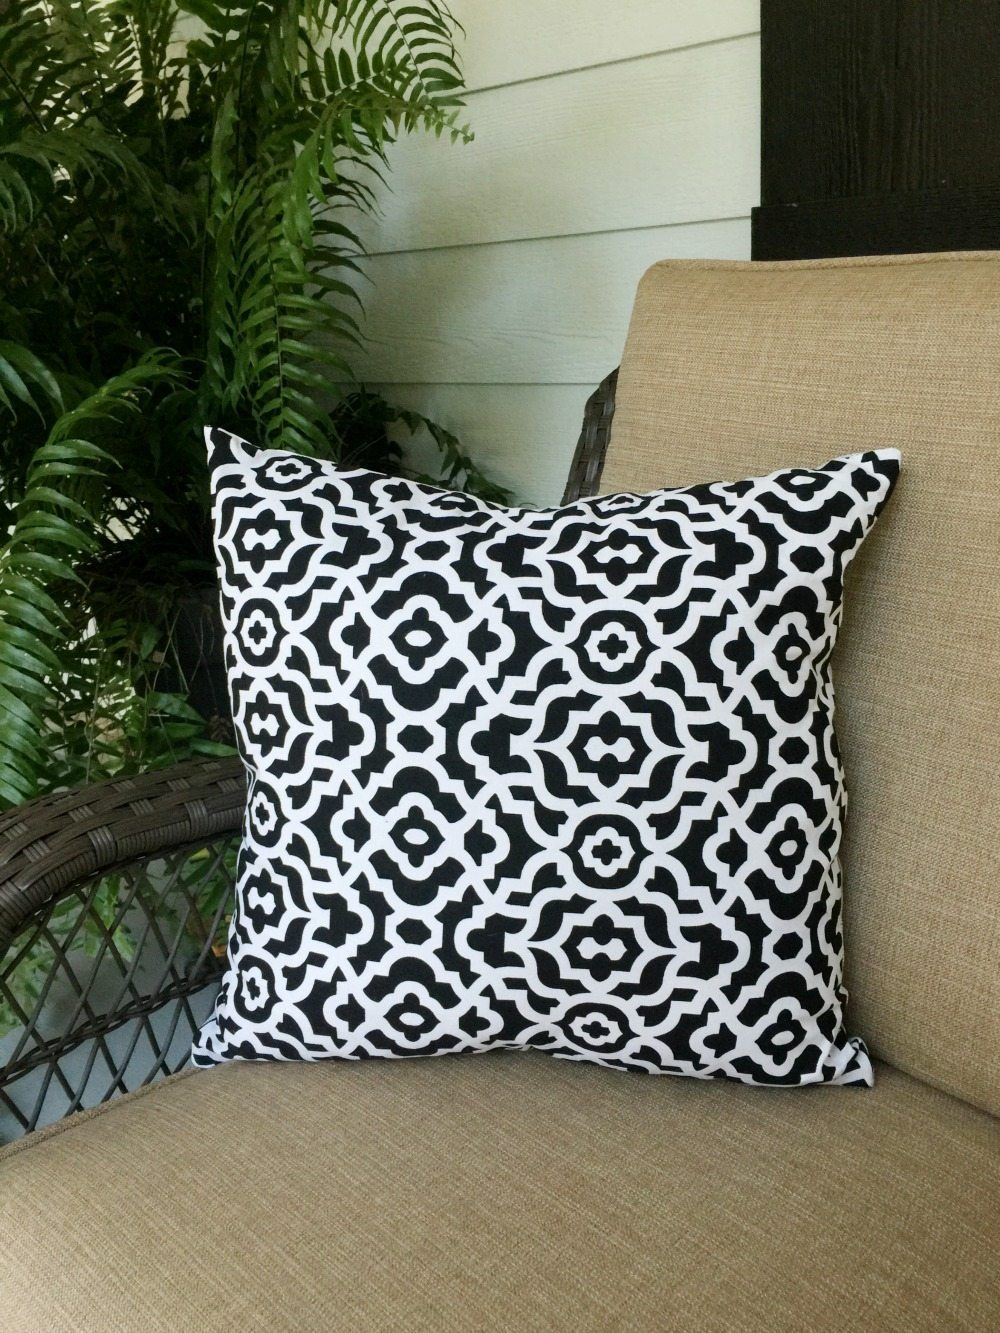 Hand Painted Pillow with reverse fabric